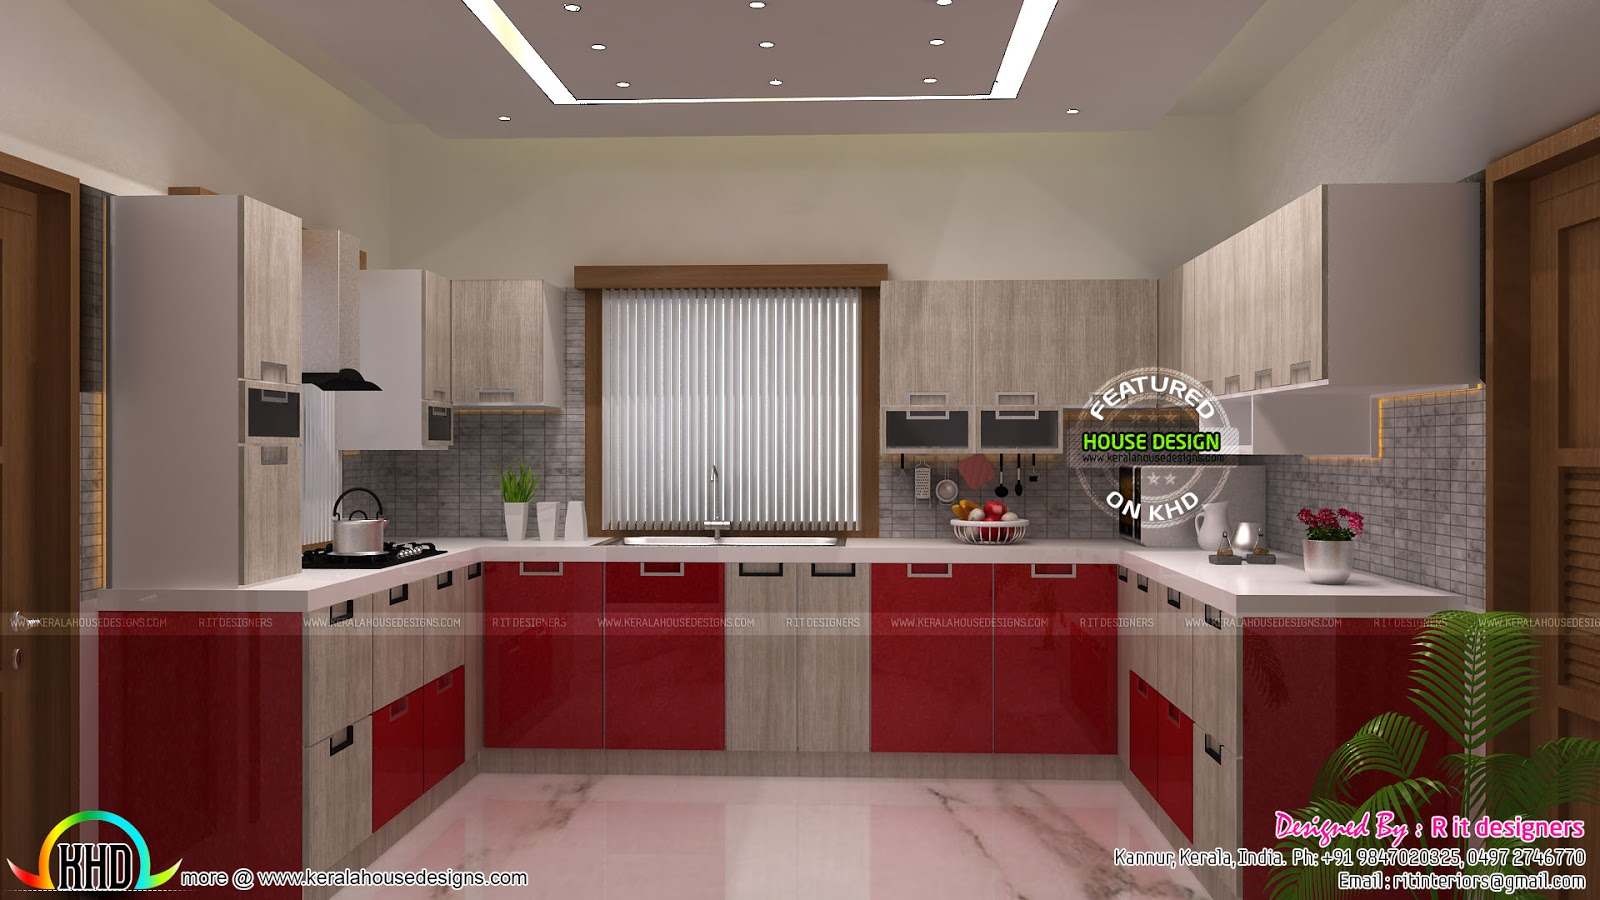 Modular kitchen dining bedroom interiors kerala home for Kitchen and bedroom designs